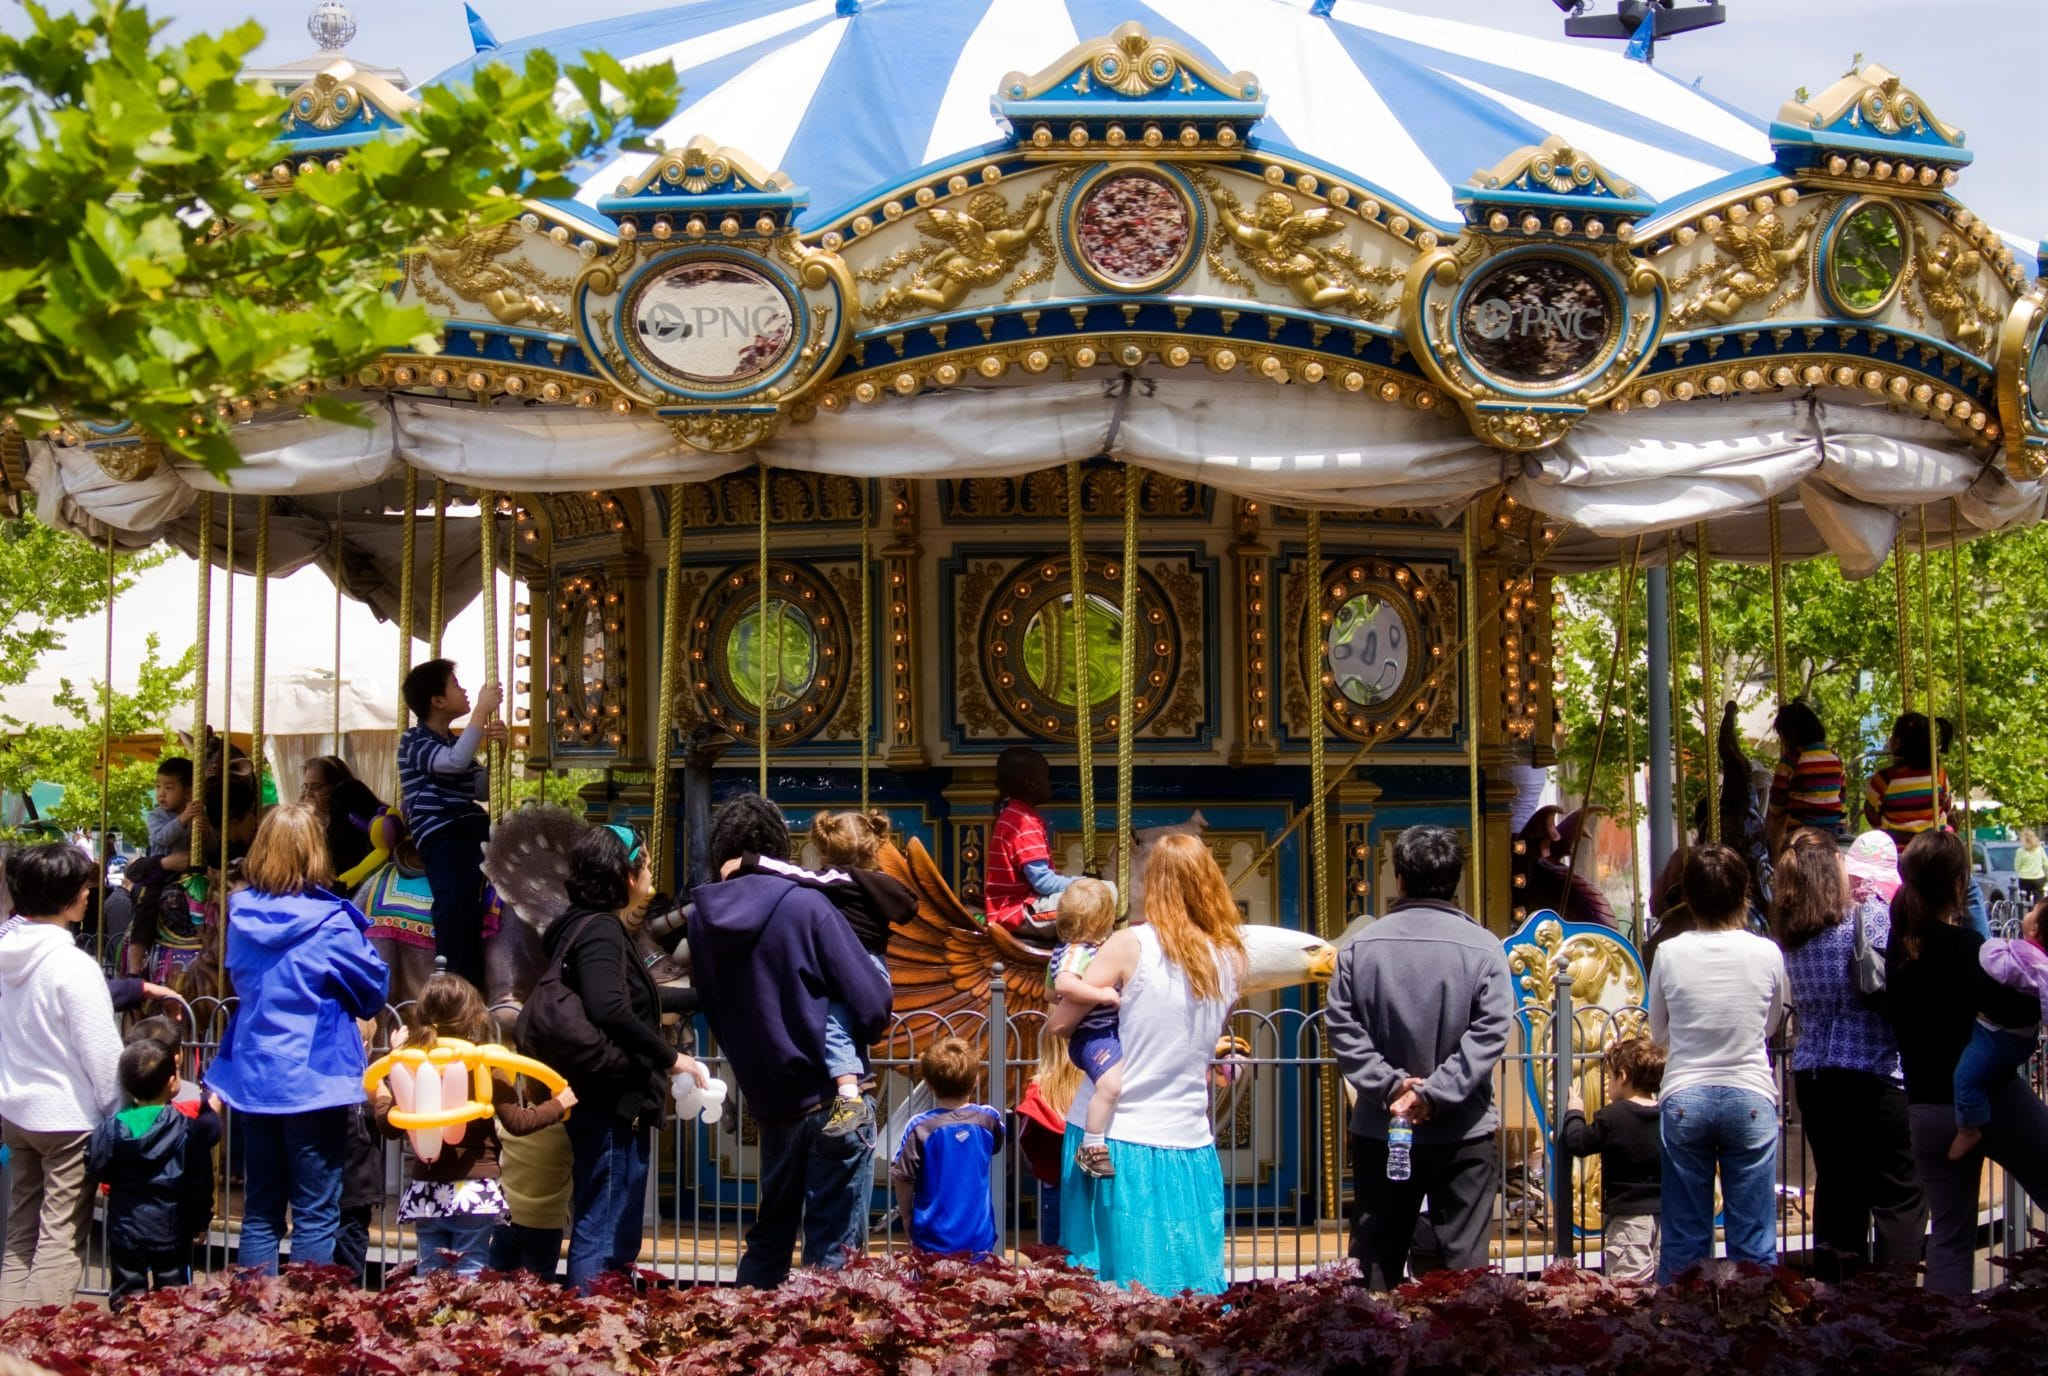 People waiting in line for the carousel in Schenley Plaza